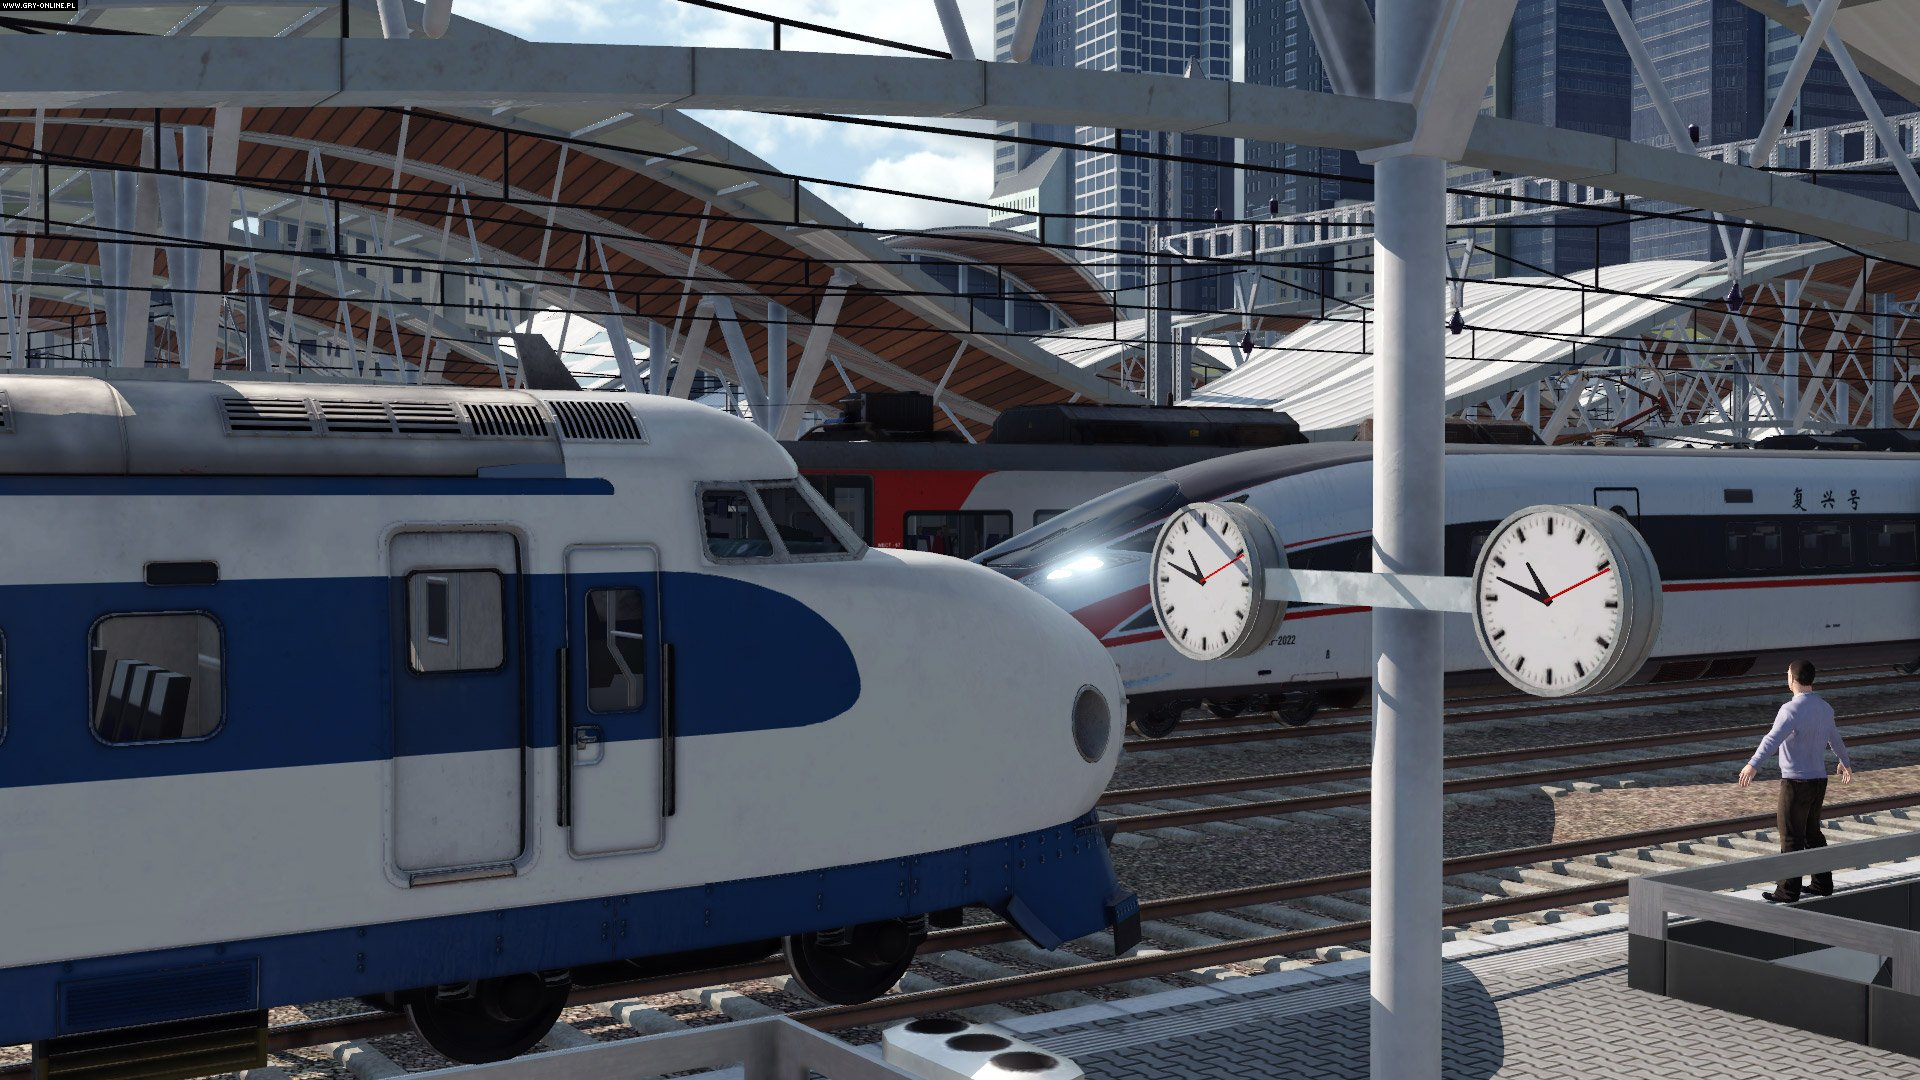 Transport Fever 2 PC Gry Screen 5/16, Urban Games, Good Shepherd Entertainment / Gambitious